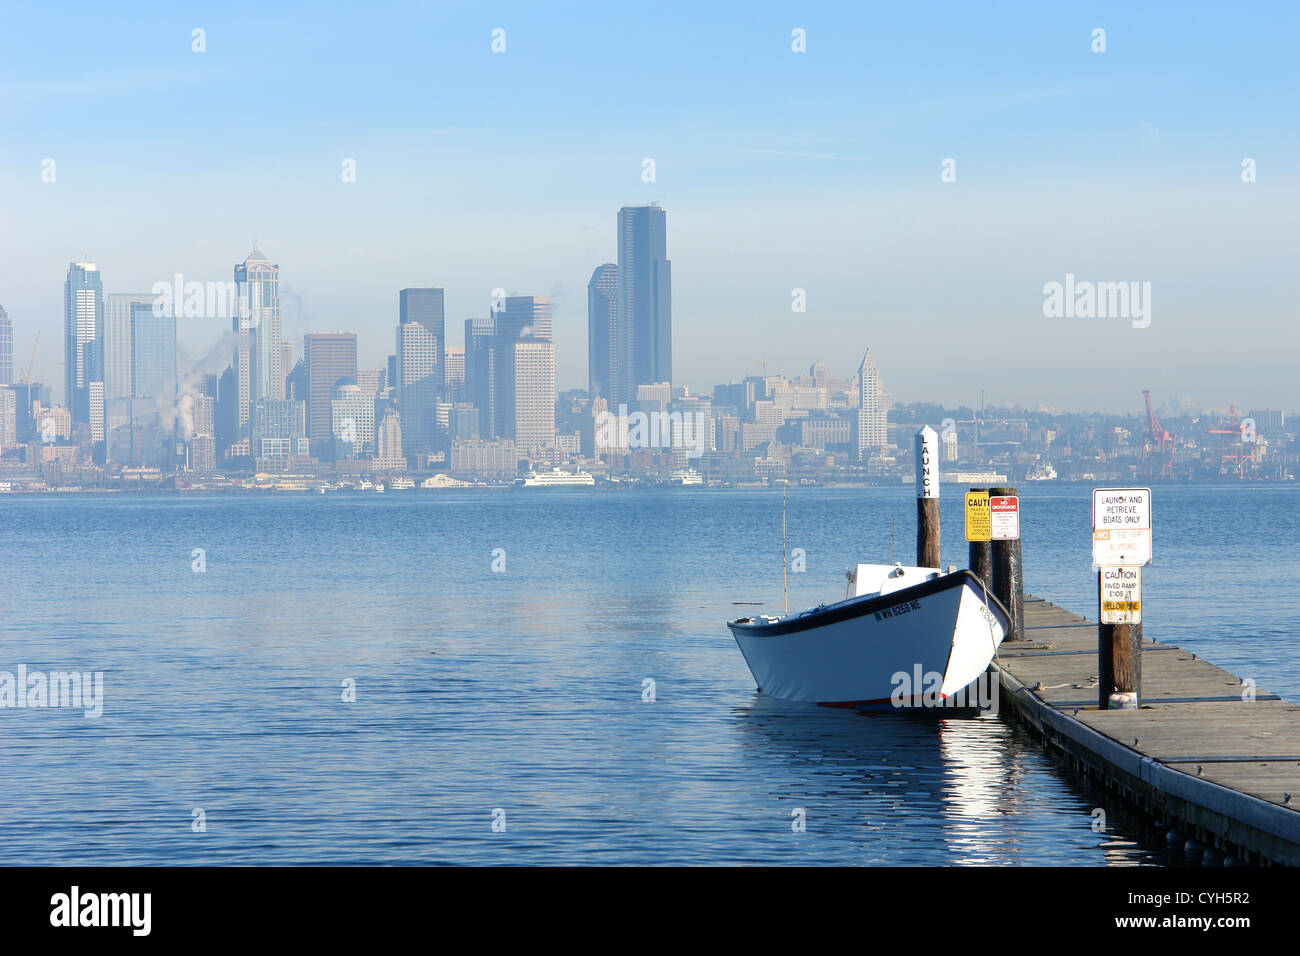 Row Boat with the city of Seattle in the background - Stock Image